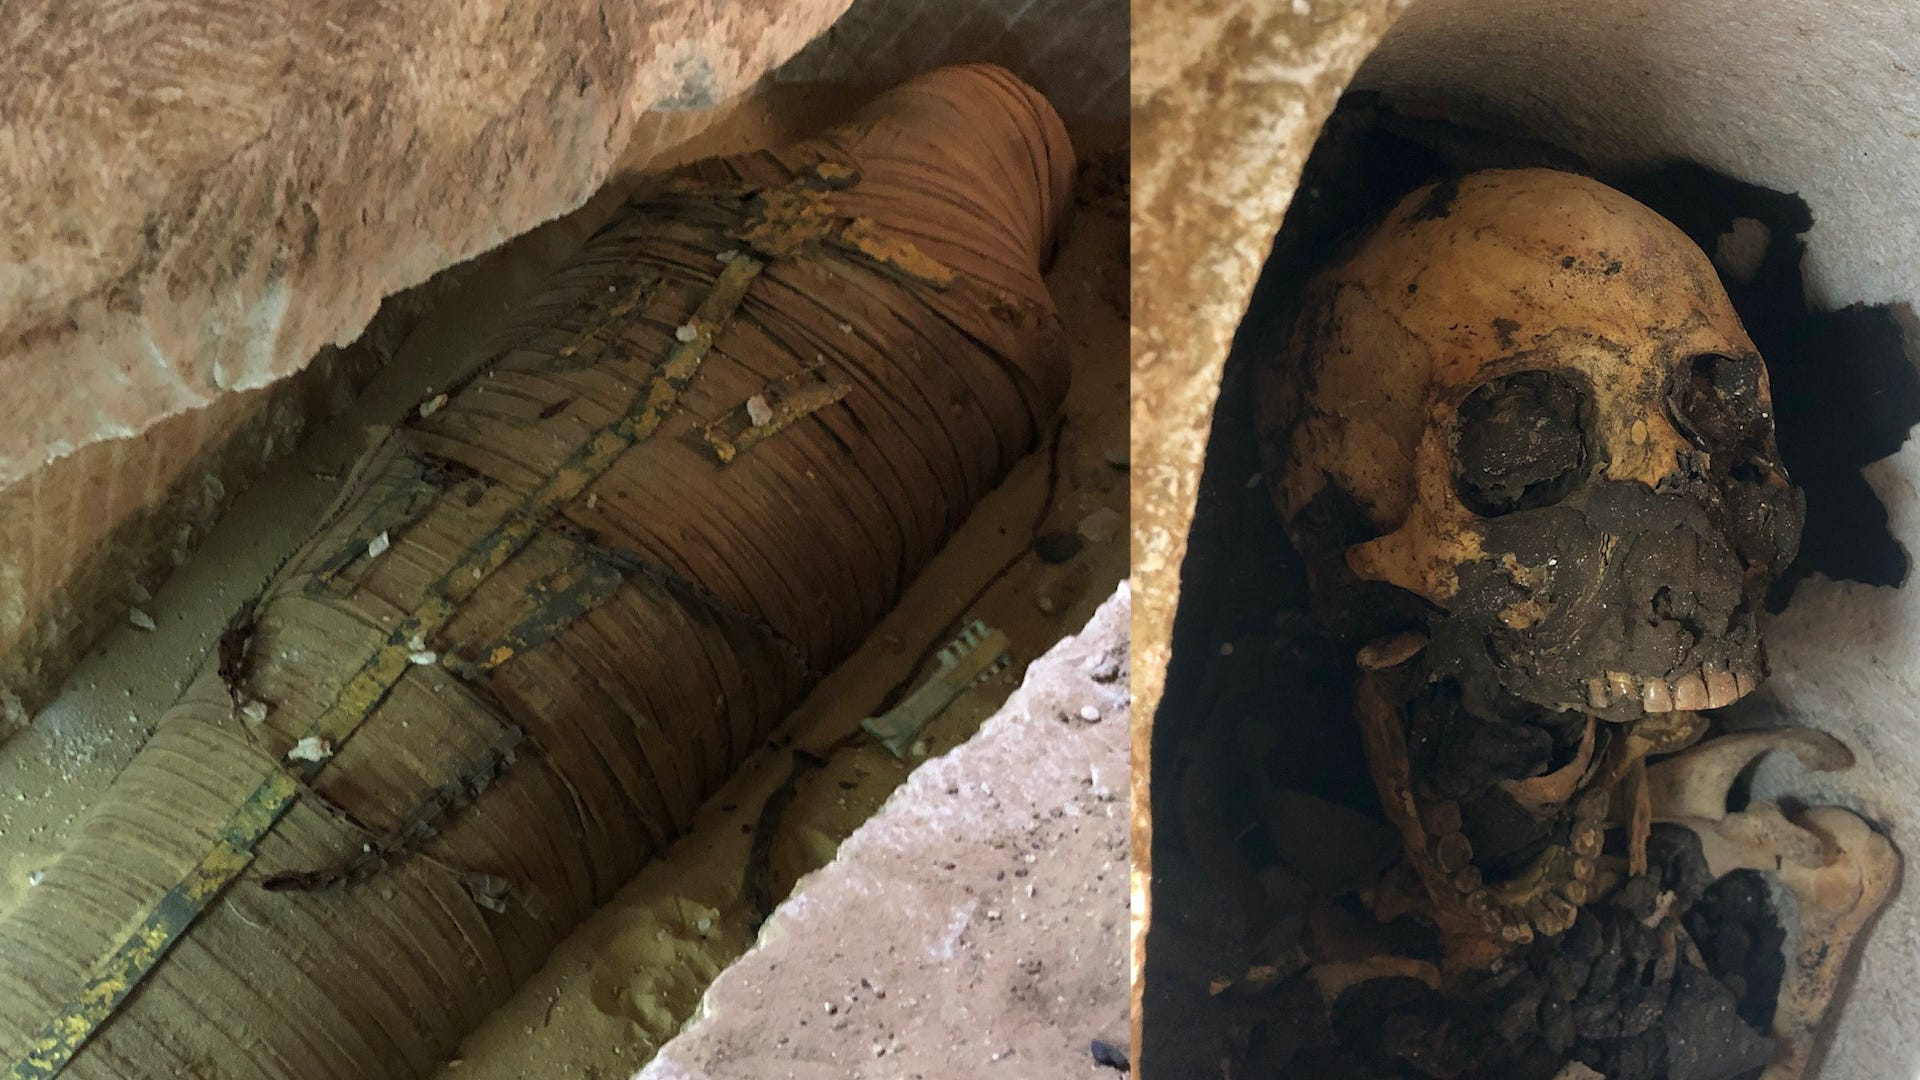 2,500-Year-Old Mummy Discovered in Egypt | Newsradio 1020 KDKA